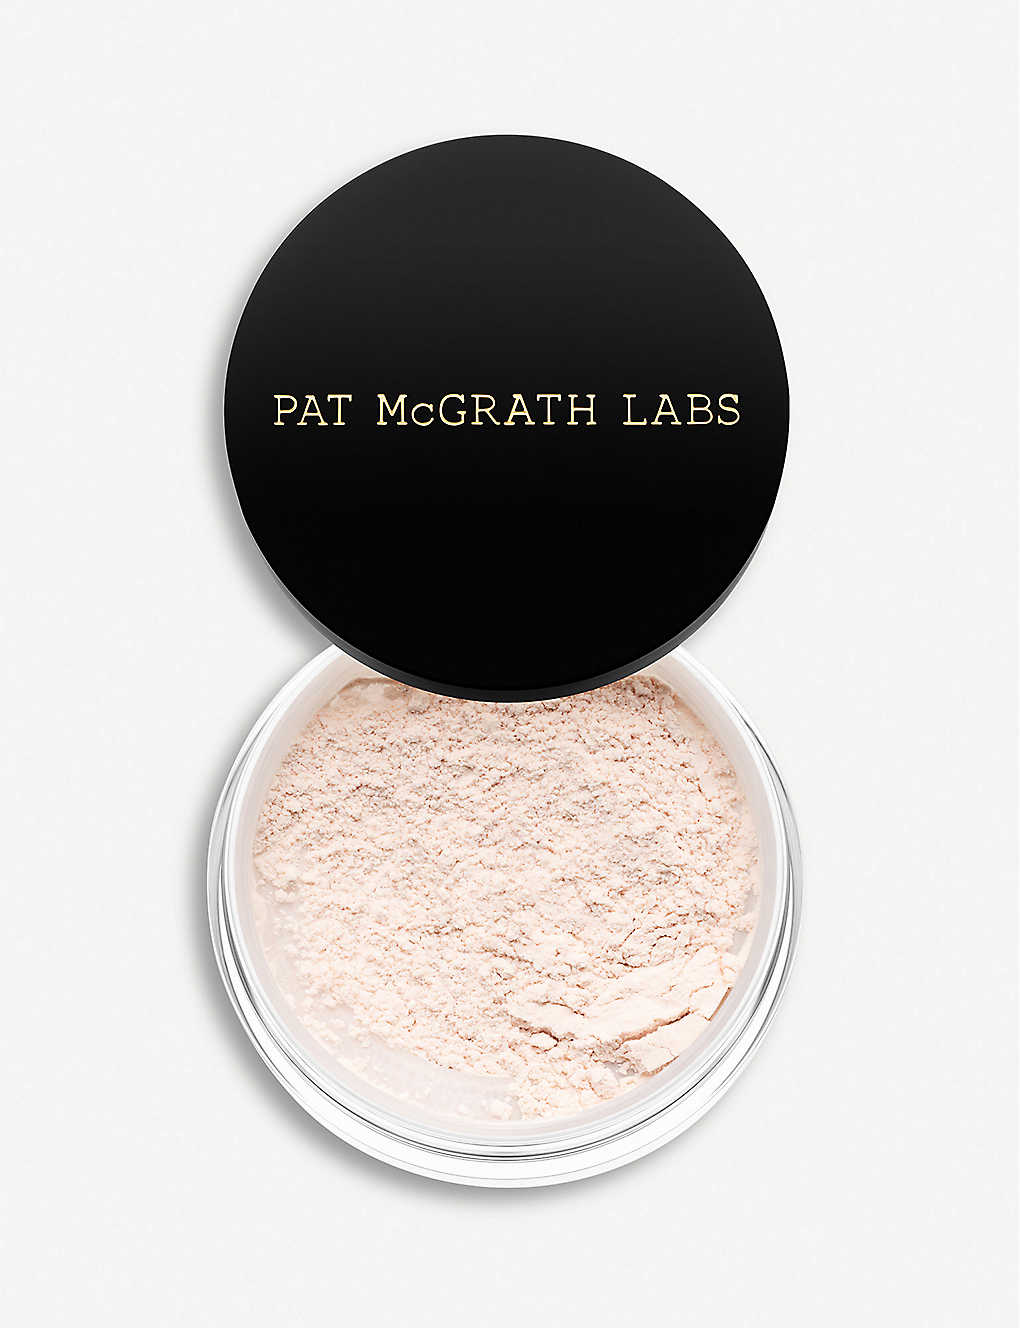 PAT MCGRATH LABS: Sublime Perfection Setting Powder 5g